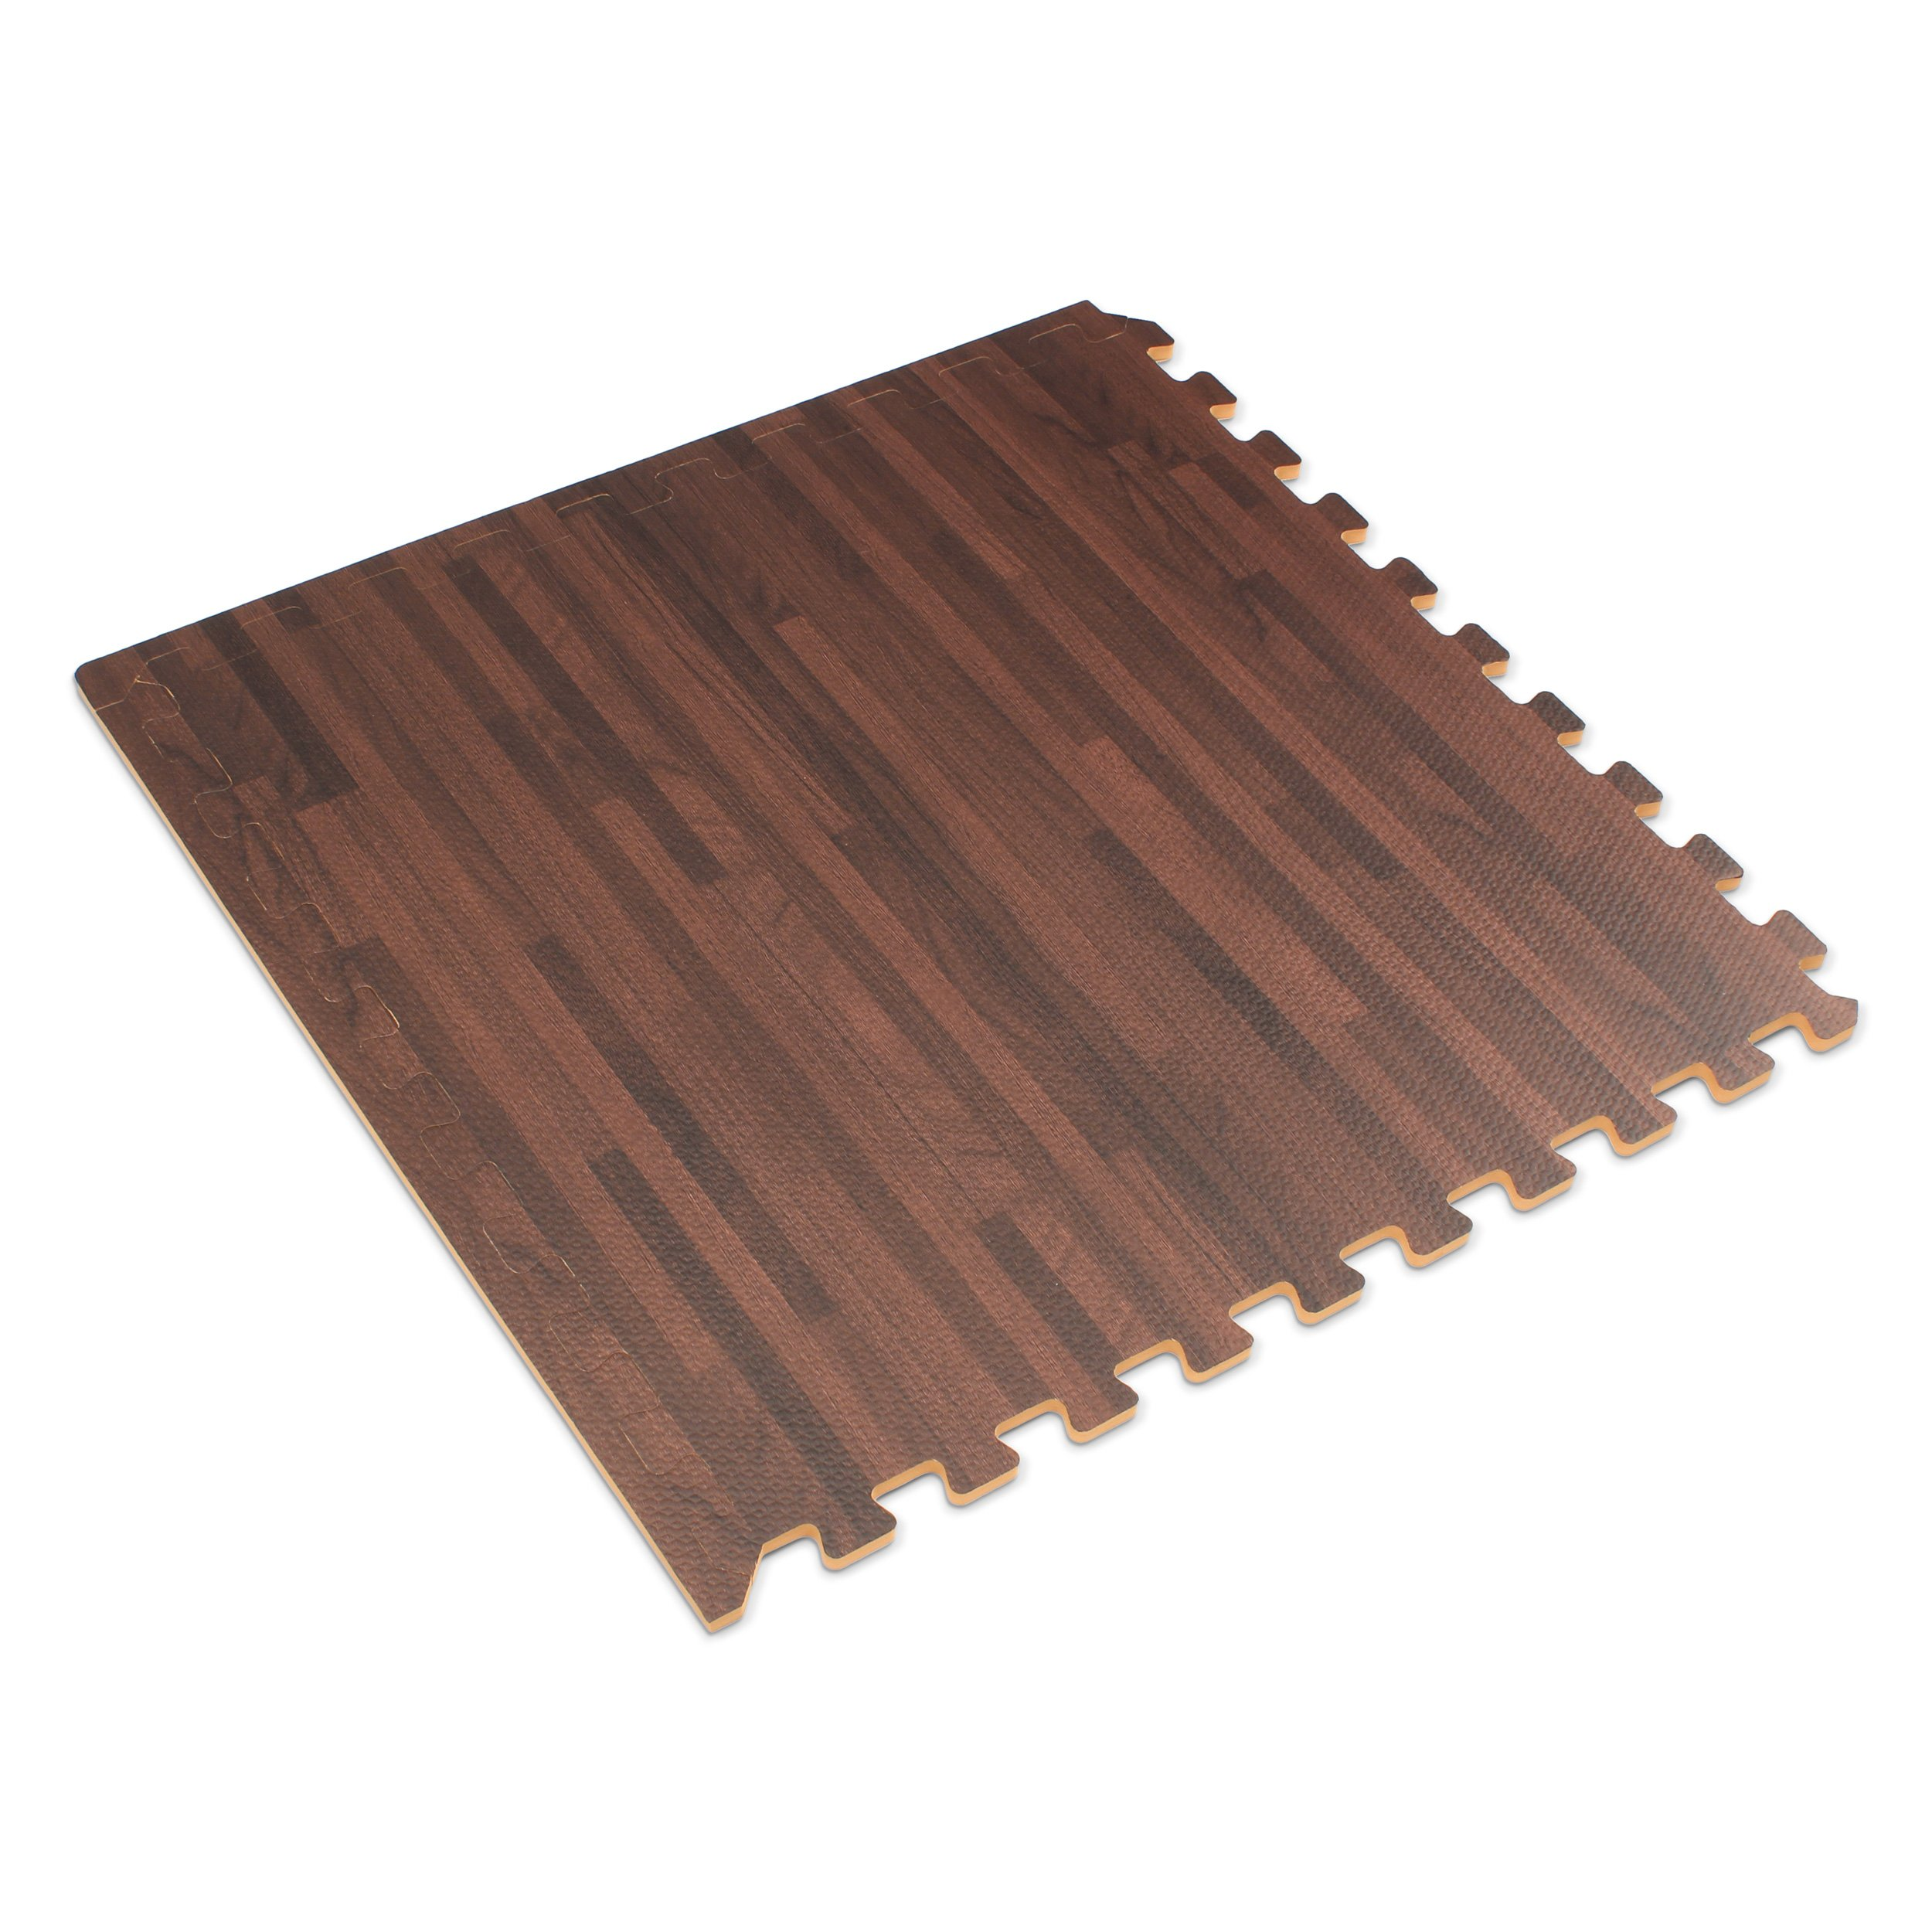 Forest Floor 3/8'' Thick Printed Wood Grain Interlocking Foam Floor Mats, 16 Sq Ft (4 Tiles), Cherry by Forest Floor (Image #2)